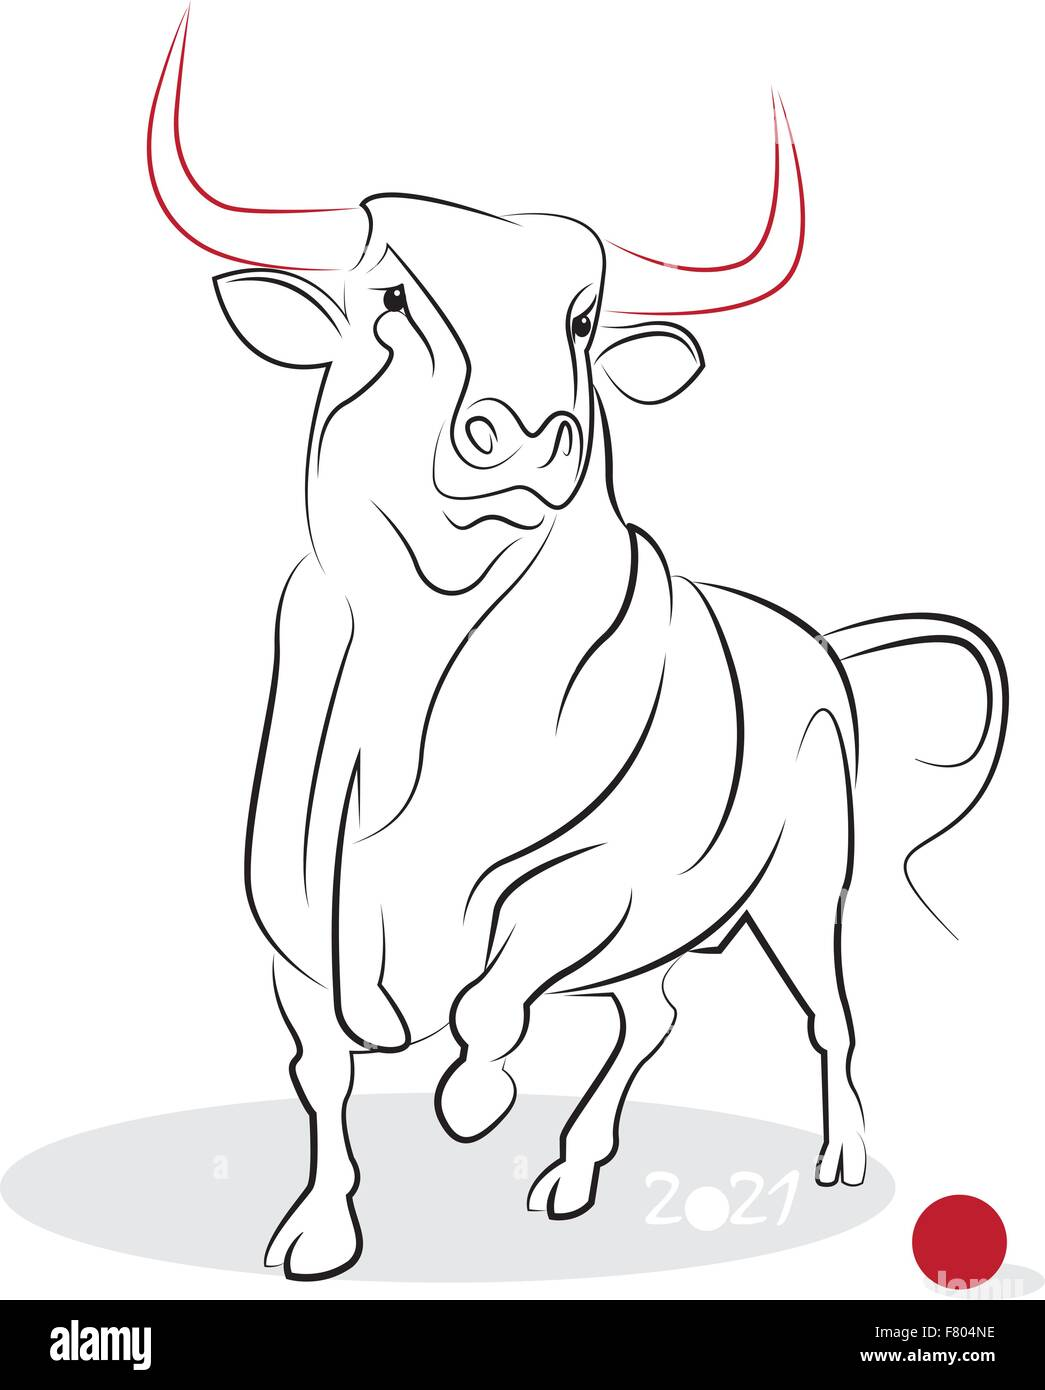 Chinese new year 2021 of the Ox (Ox year). Greeting or ...